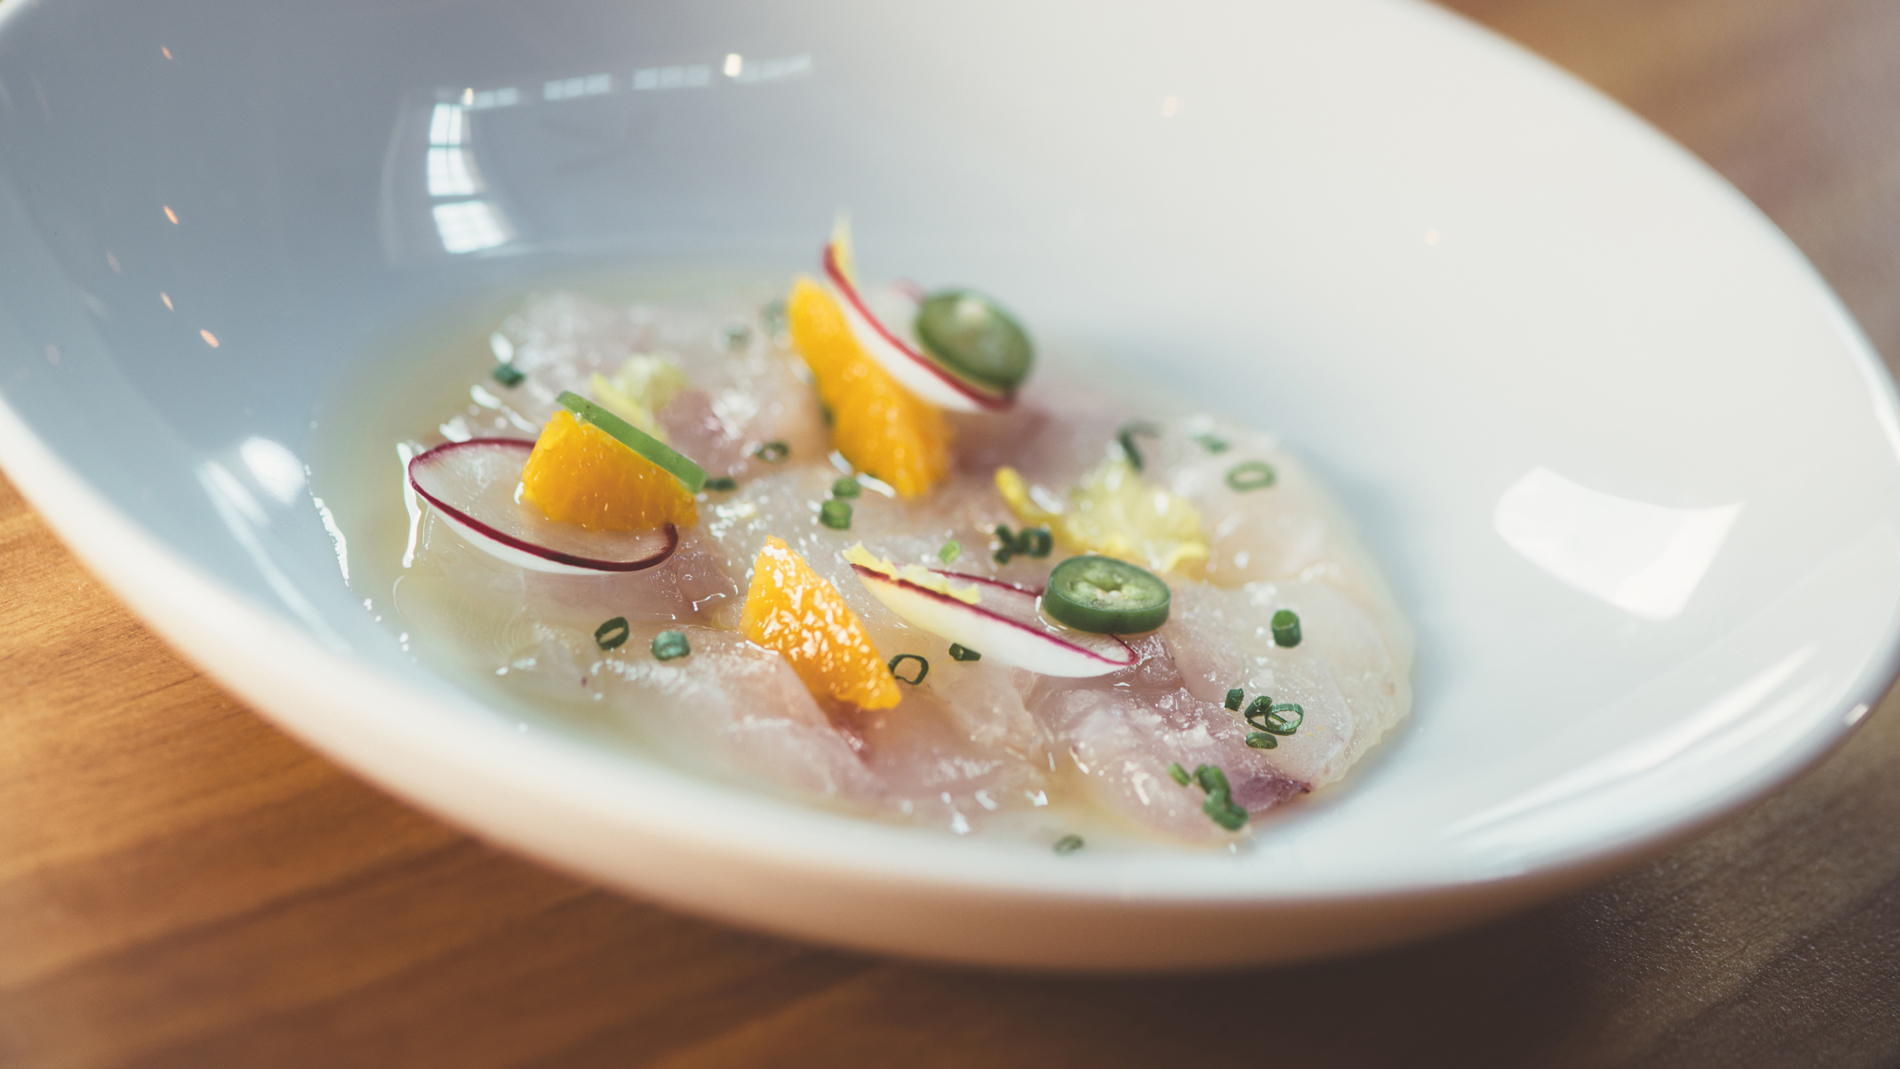 Yellowtail Crudo at Jianna